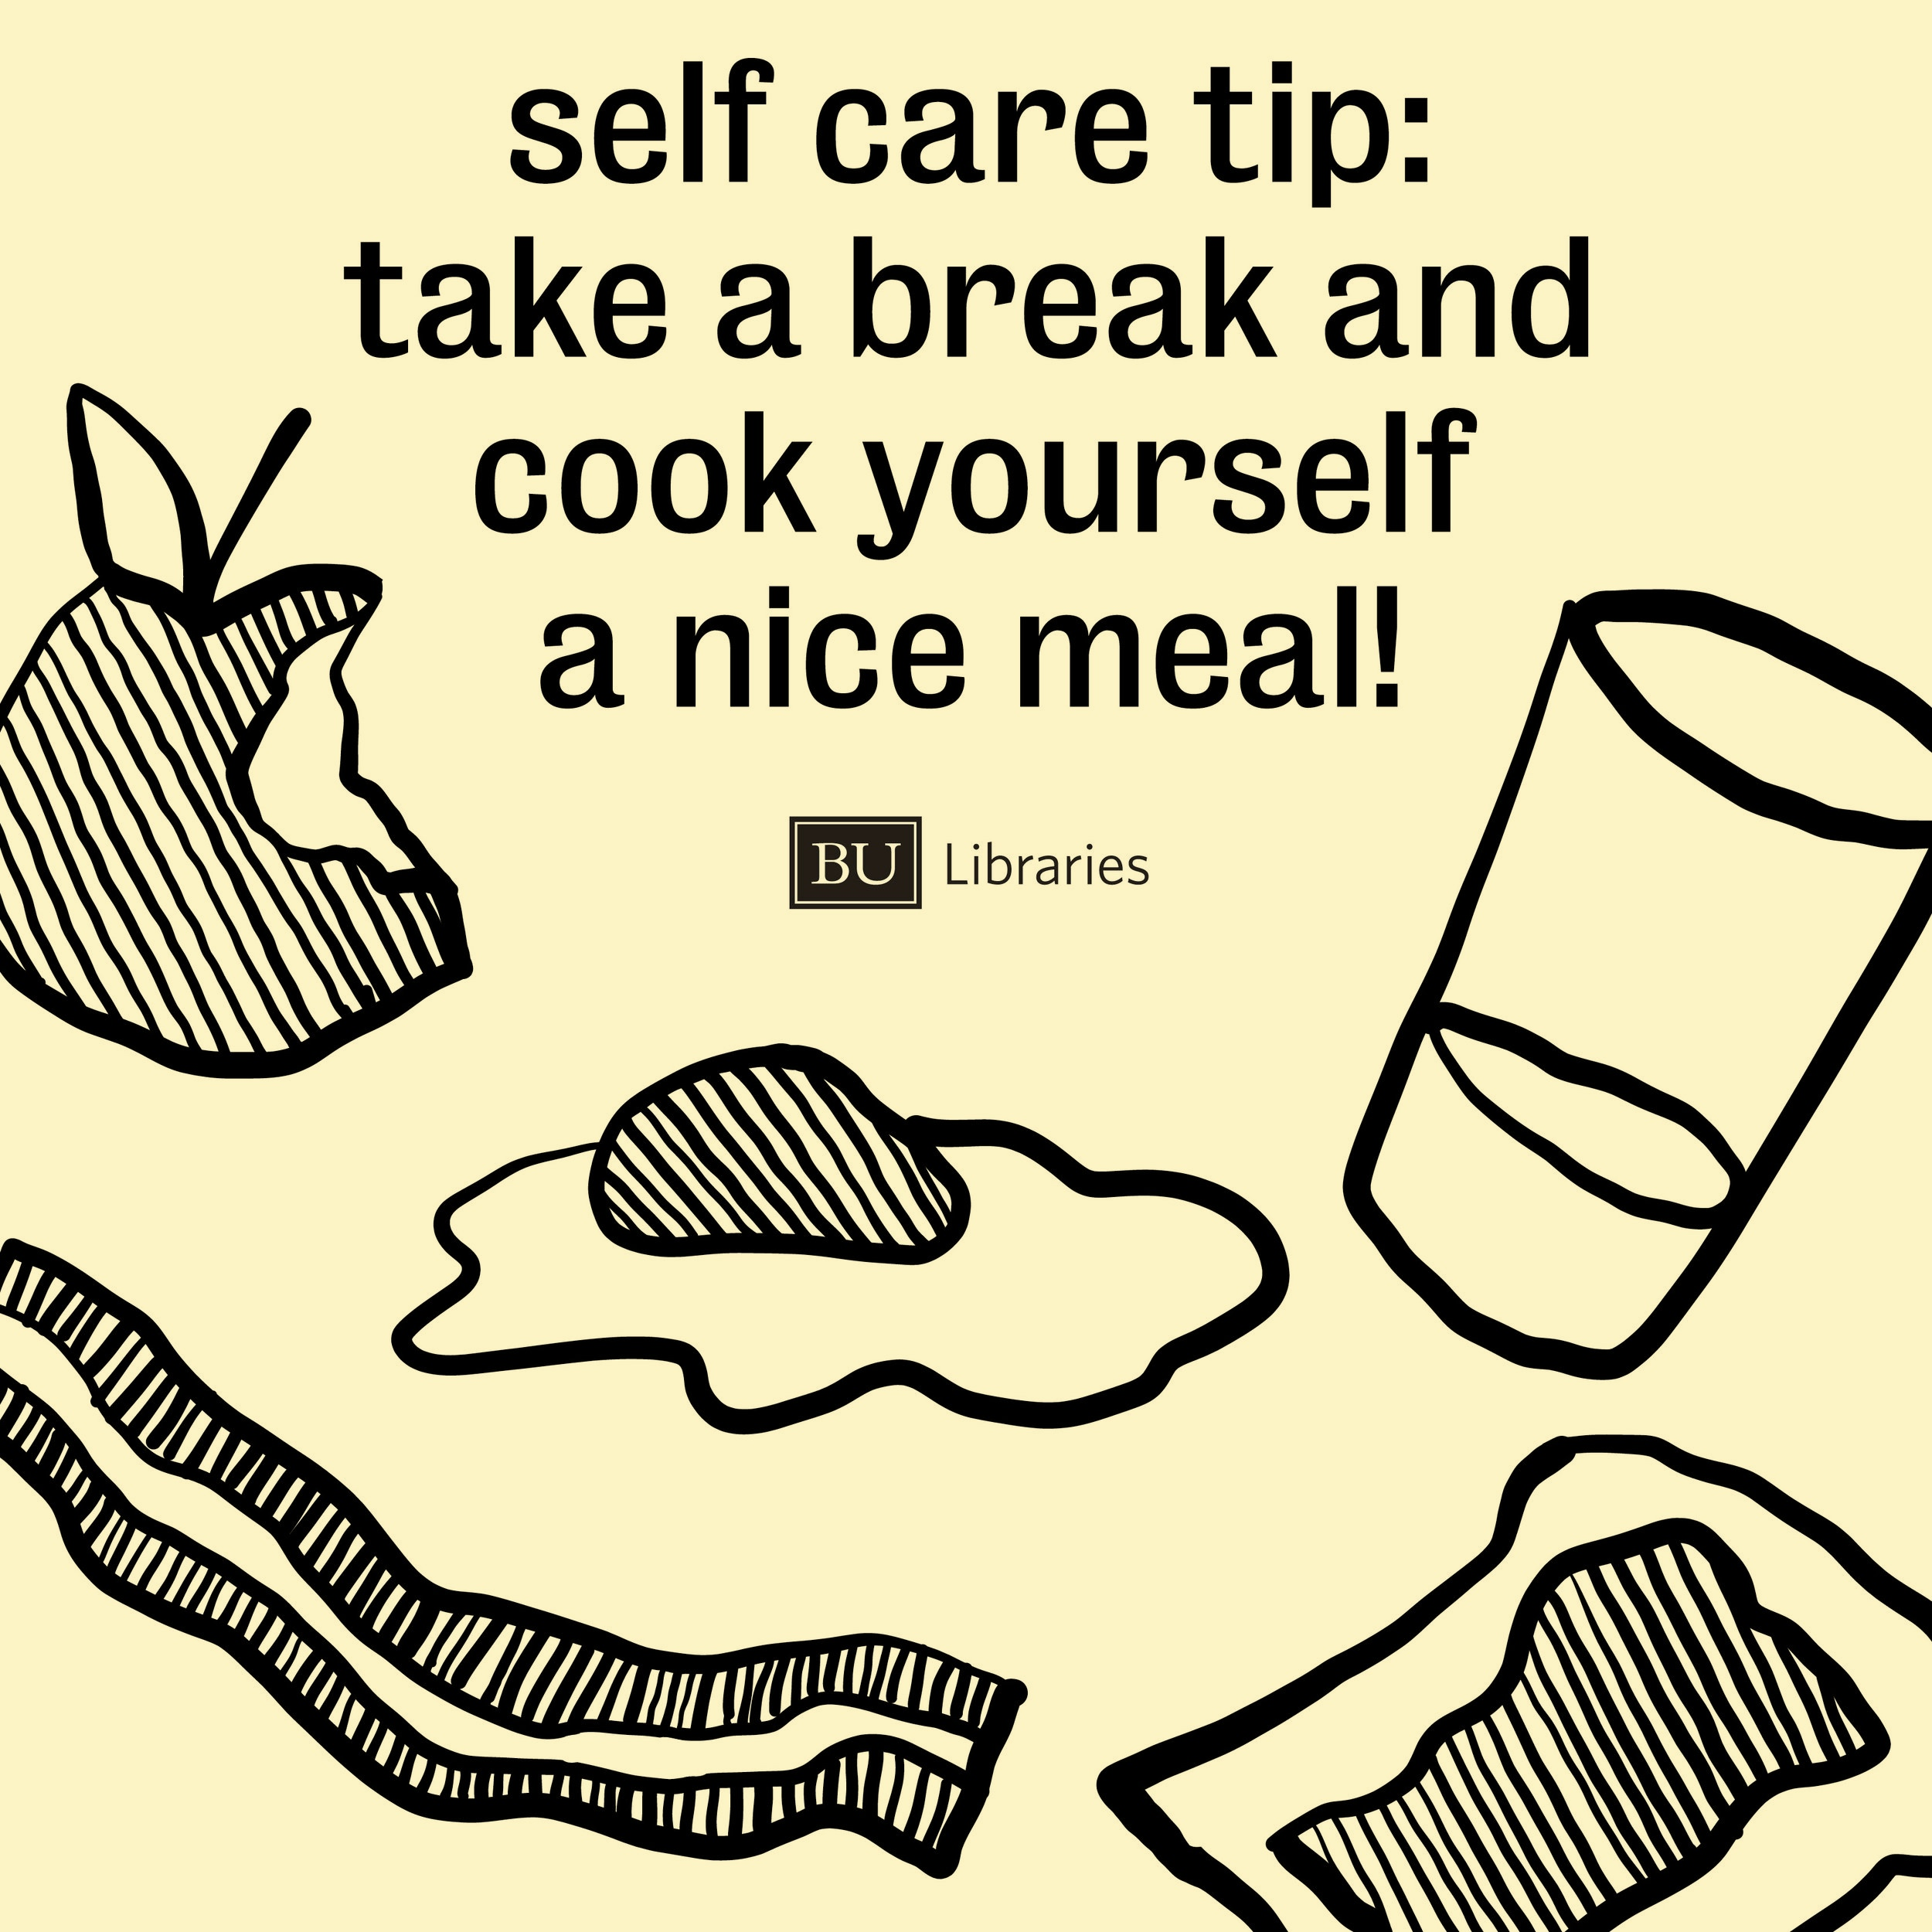 This instagram graphic reminds students to take care of themselves while studying.